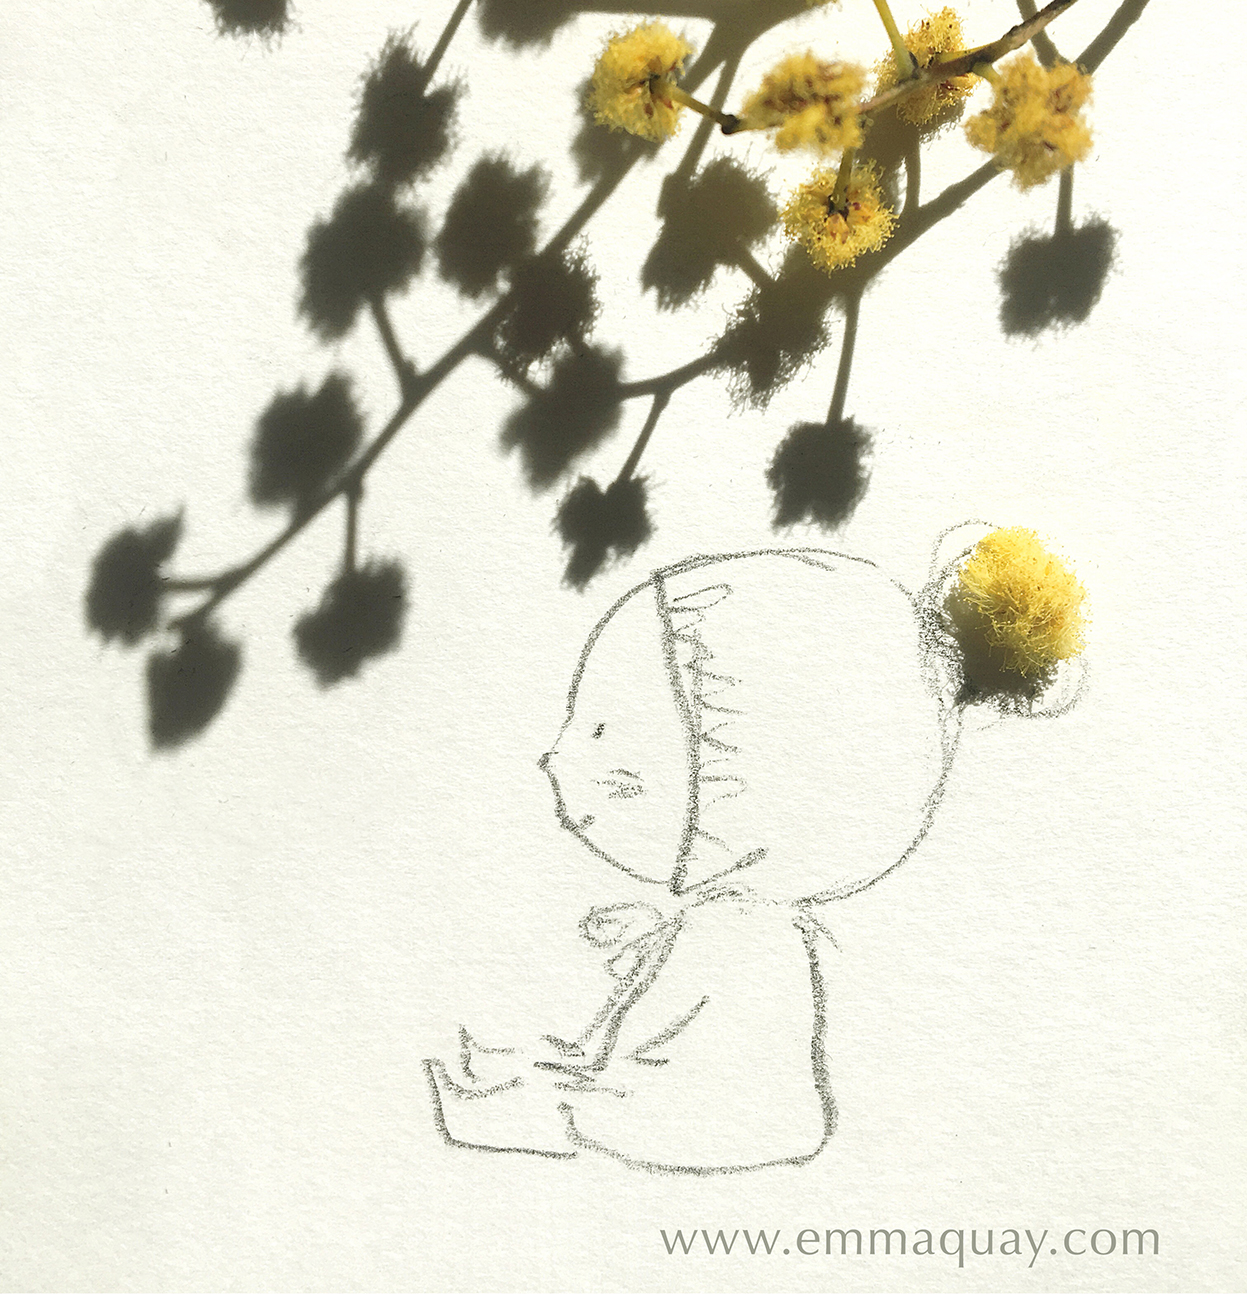 Wattle pompom #emmaquaysketchbook